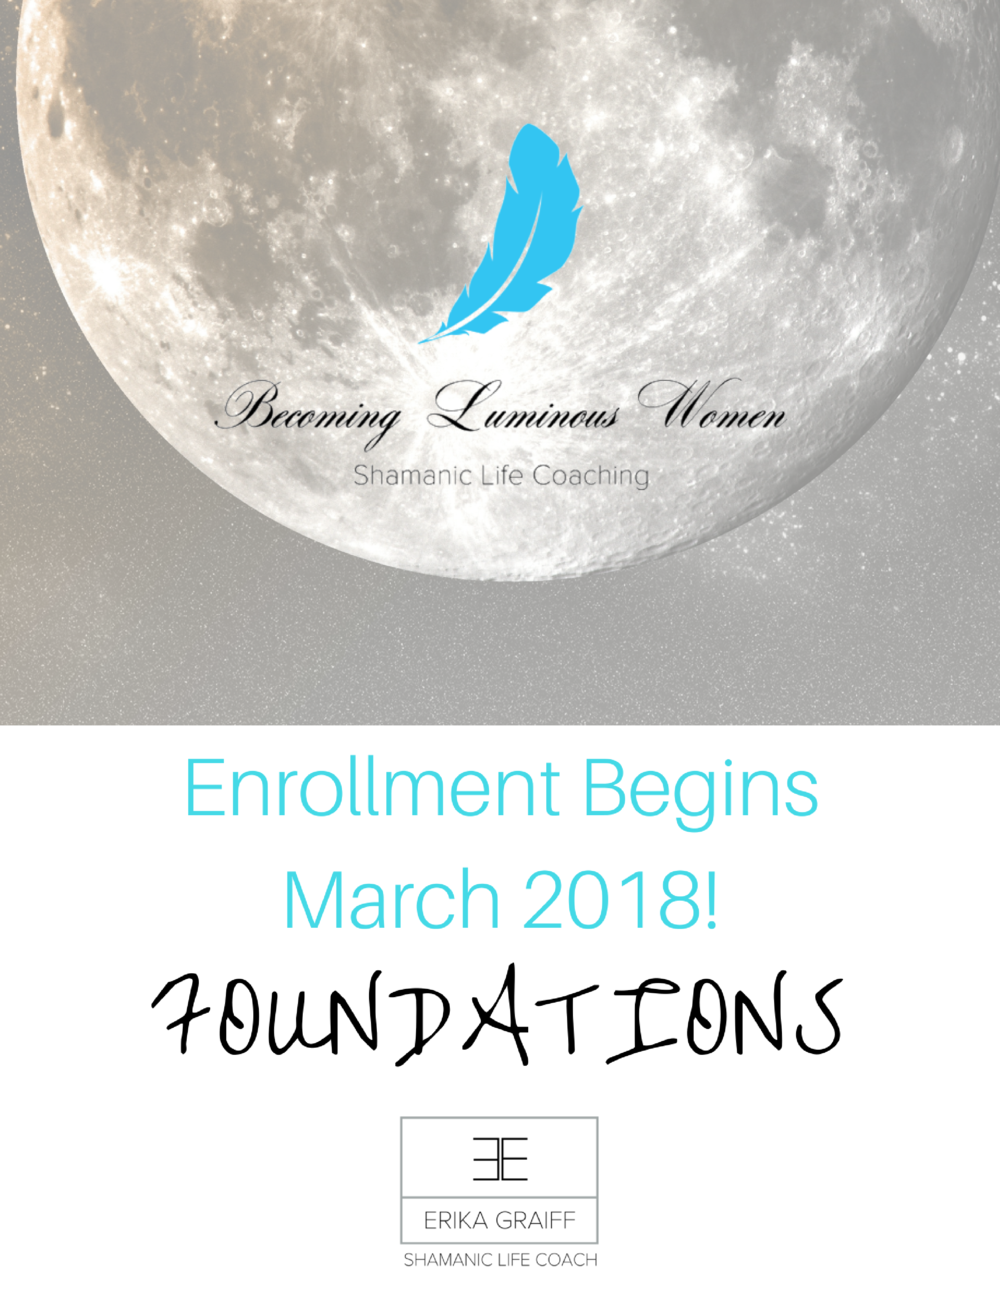 IT'S Finally Ready! March 2018! Becoming Luminous Women- School for Holistic Womanhood 6 Month, Small Group Transformation Align with your moon cycle, Heal your sisterhood, Becoming empowered to travel through the portal of your next Becoming... Luminous!